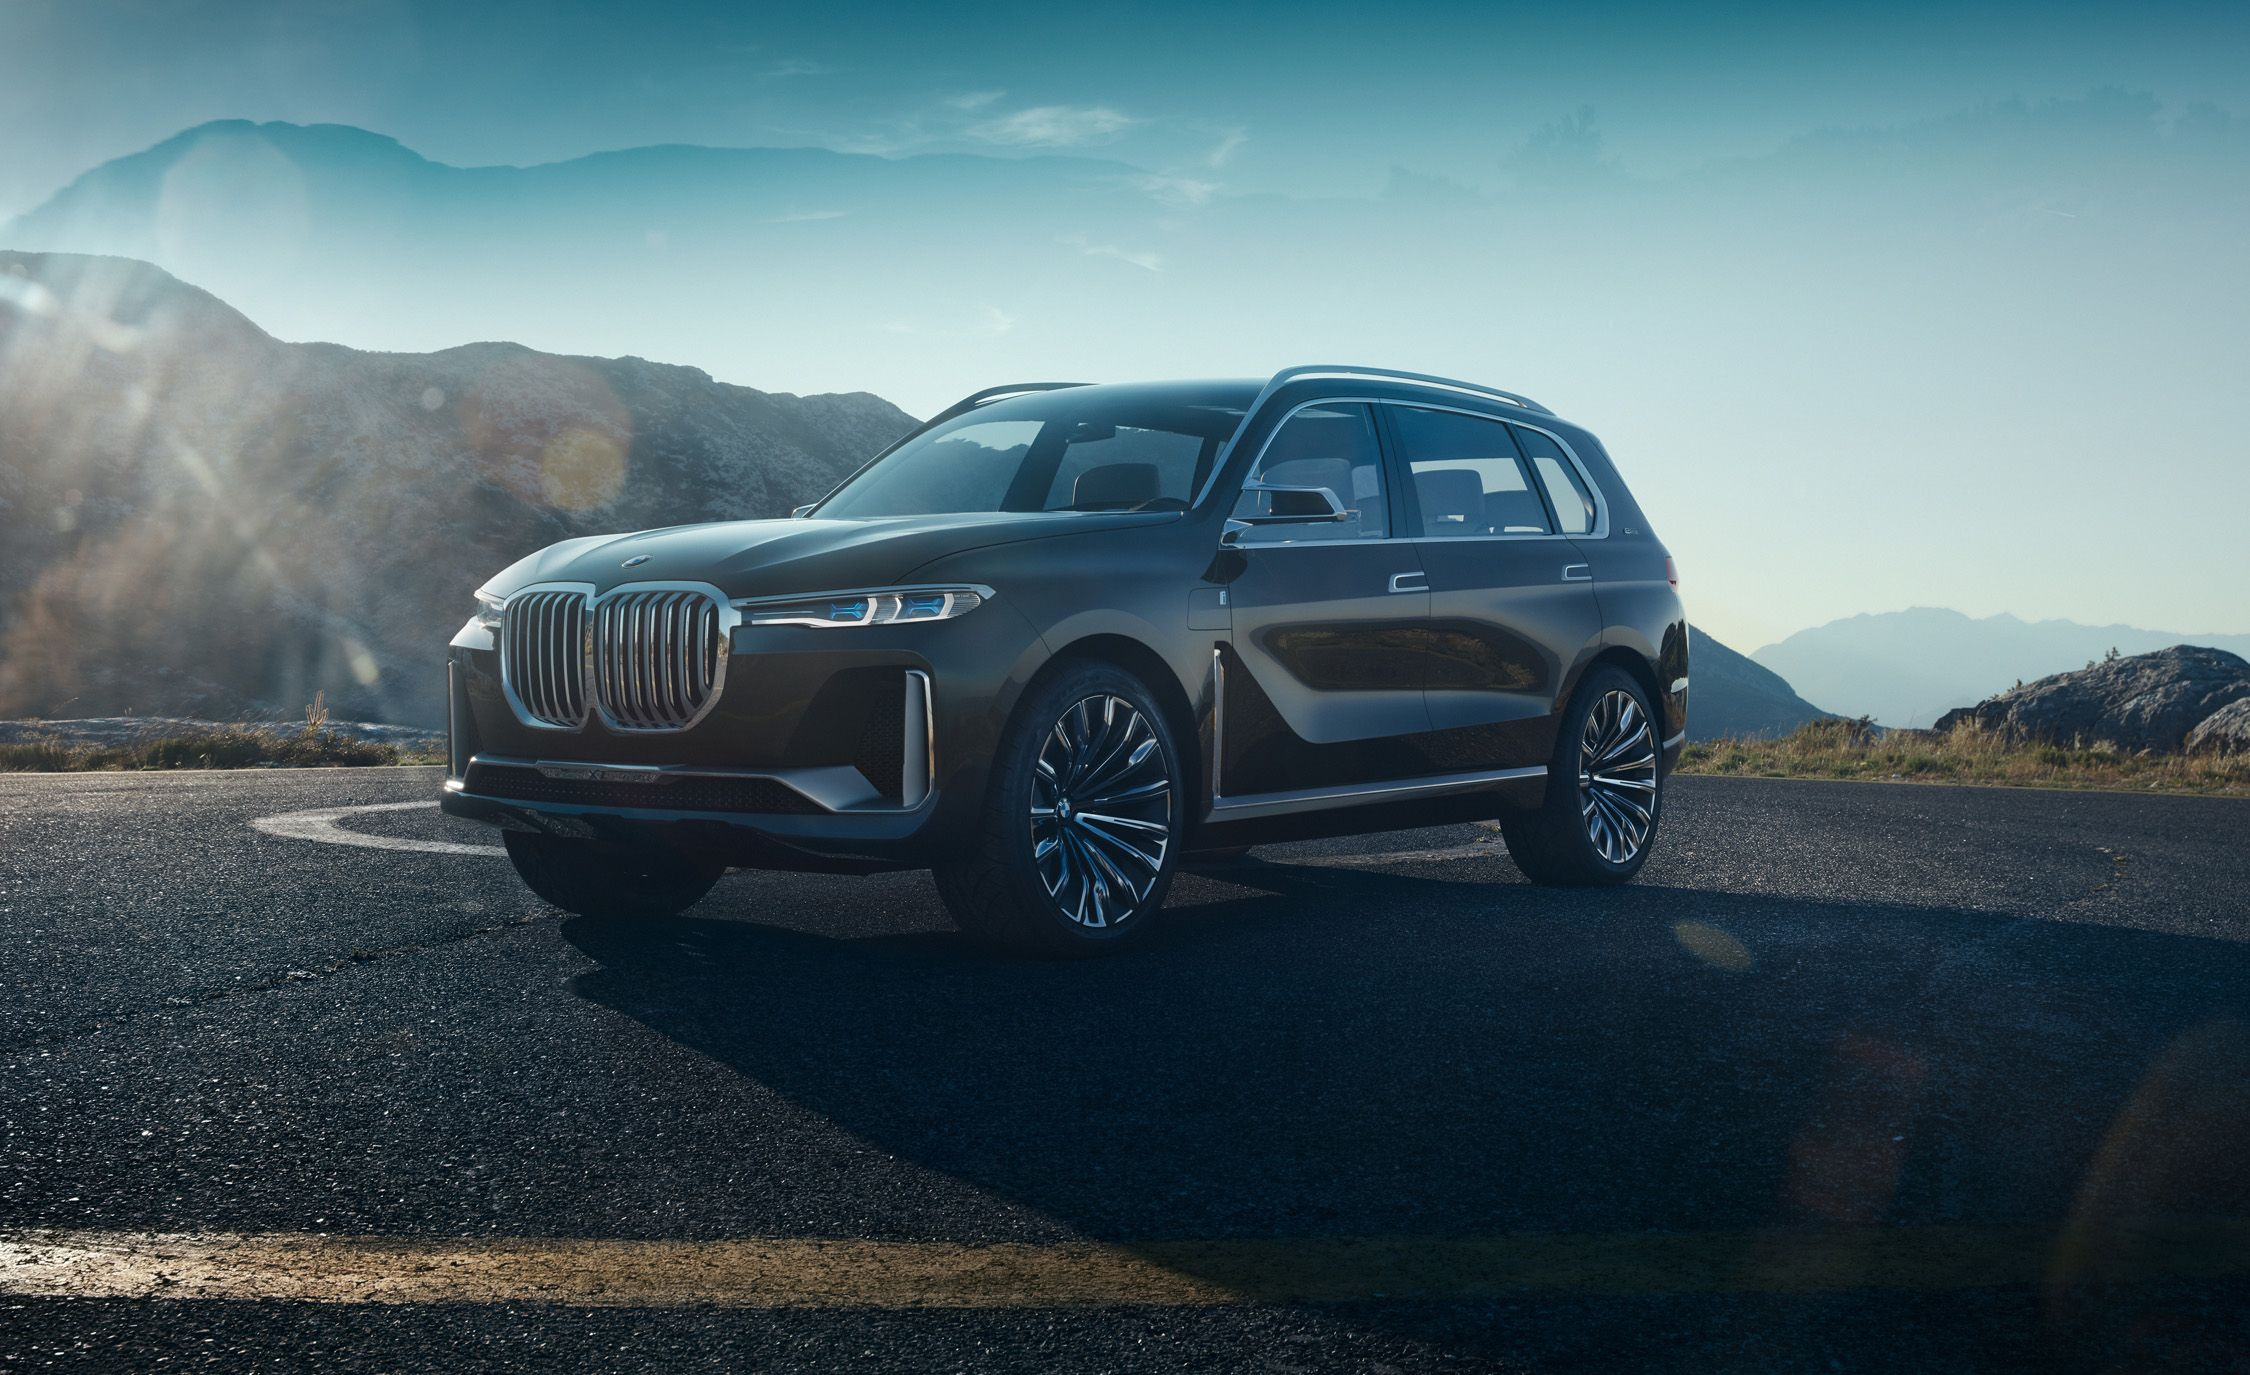 bmw concept x7 iperformance photos and info | news | car and driver